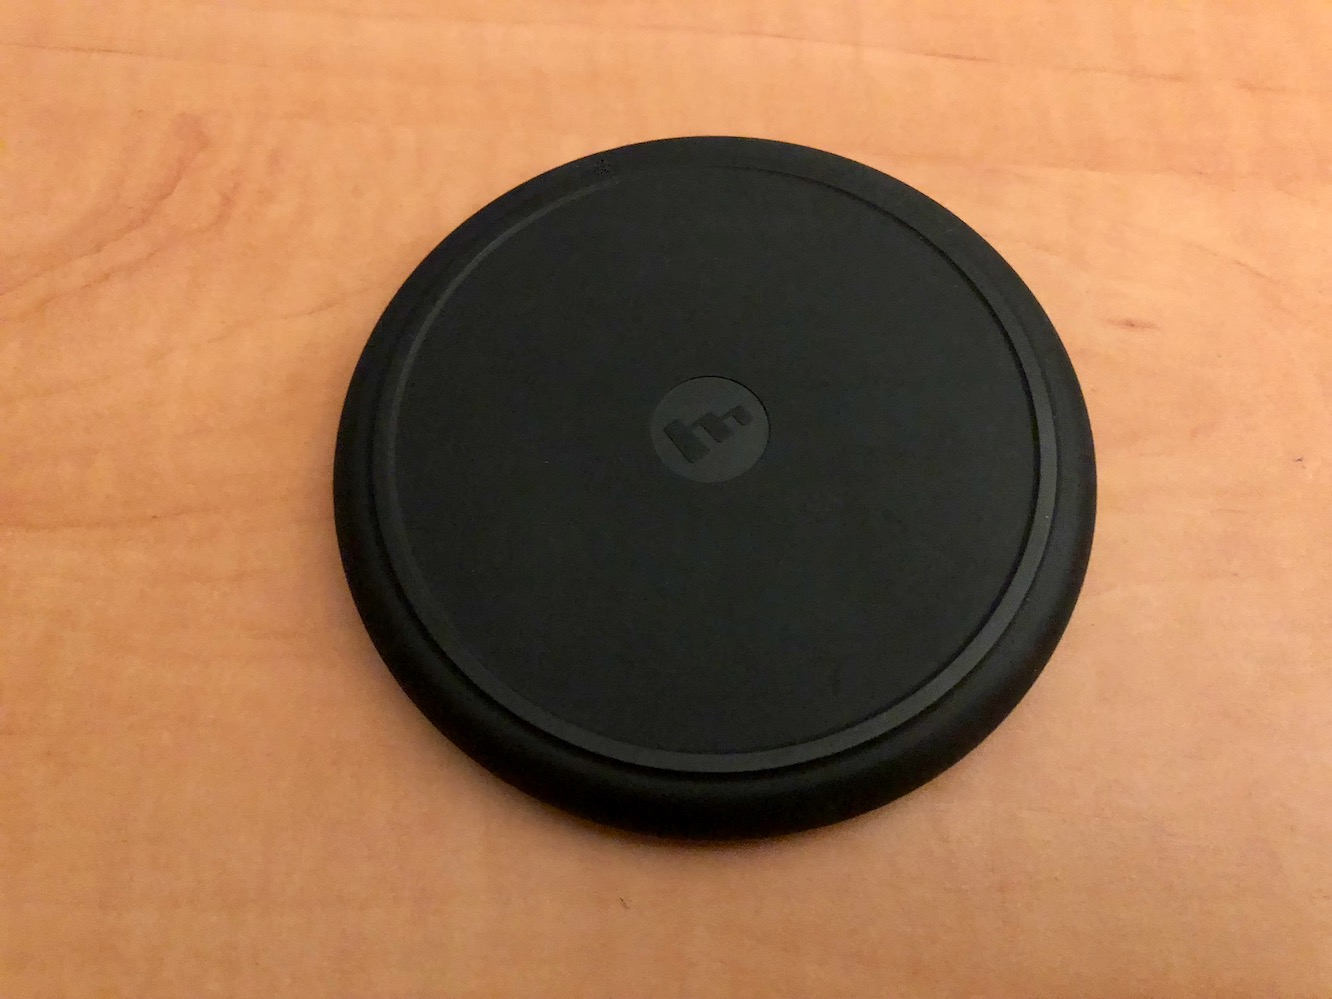 Review: Mophie Wireless Charging Base 1